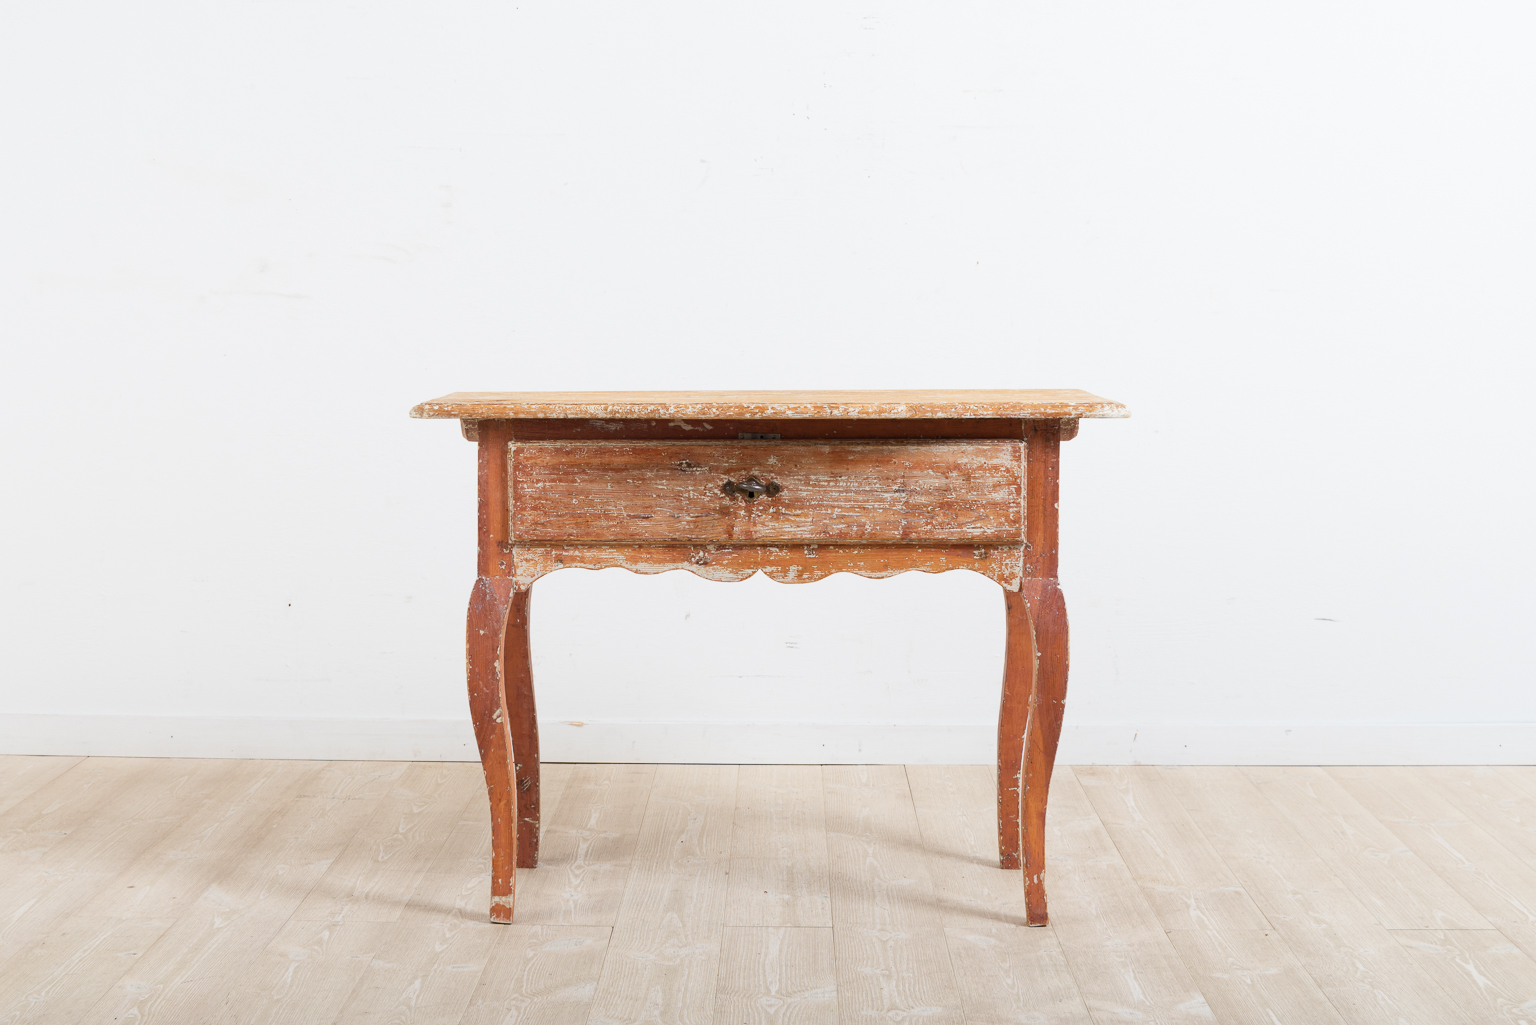 Provincial rococo side table or window table. Manufactured in northern Sweden during the late 1700s. Later lock and key in working condition.